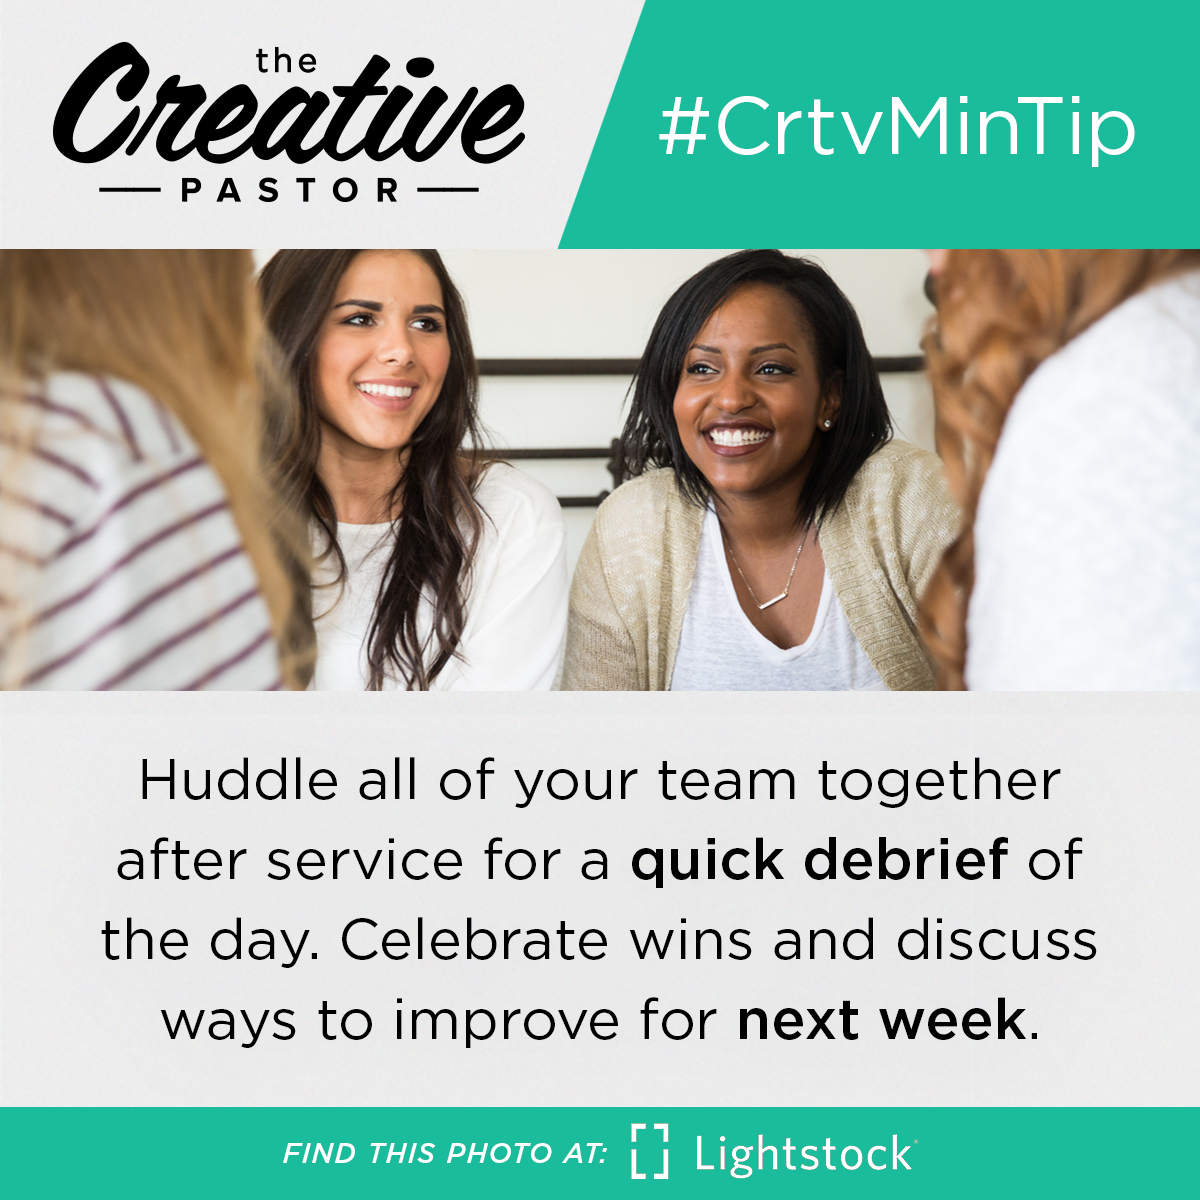 Huddle all of your team together after service for a quick debrief of the day. Celebrate wins and discuss ways to improve for next week.